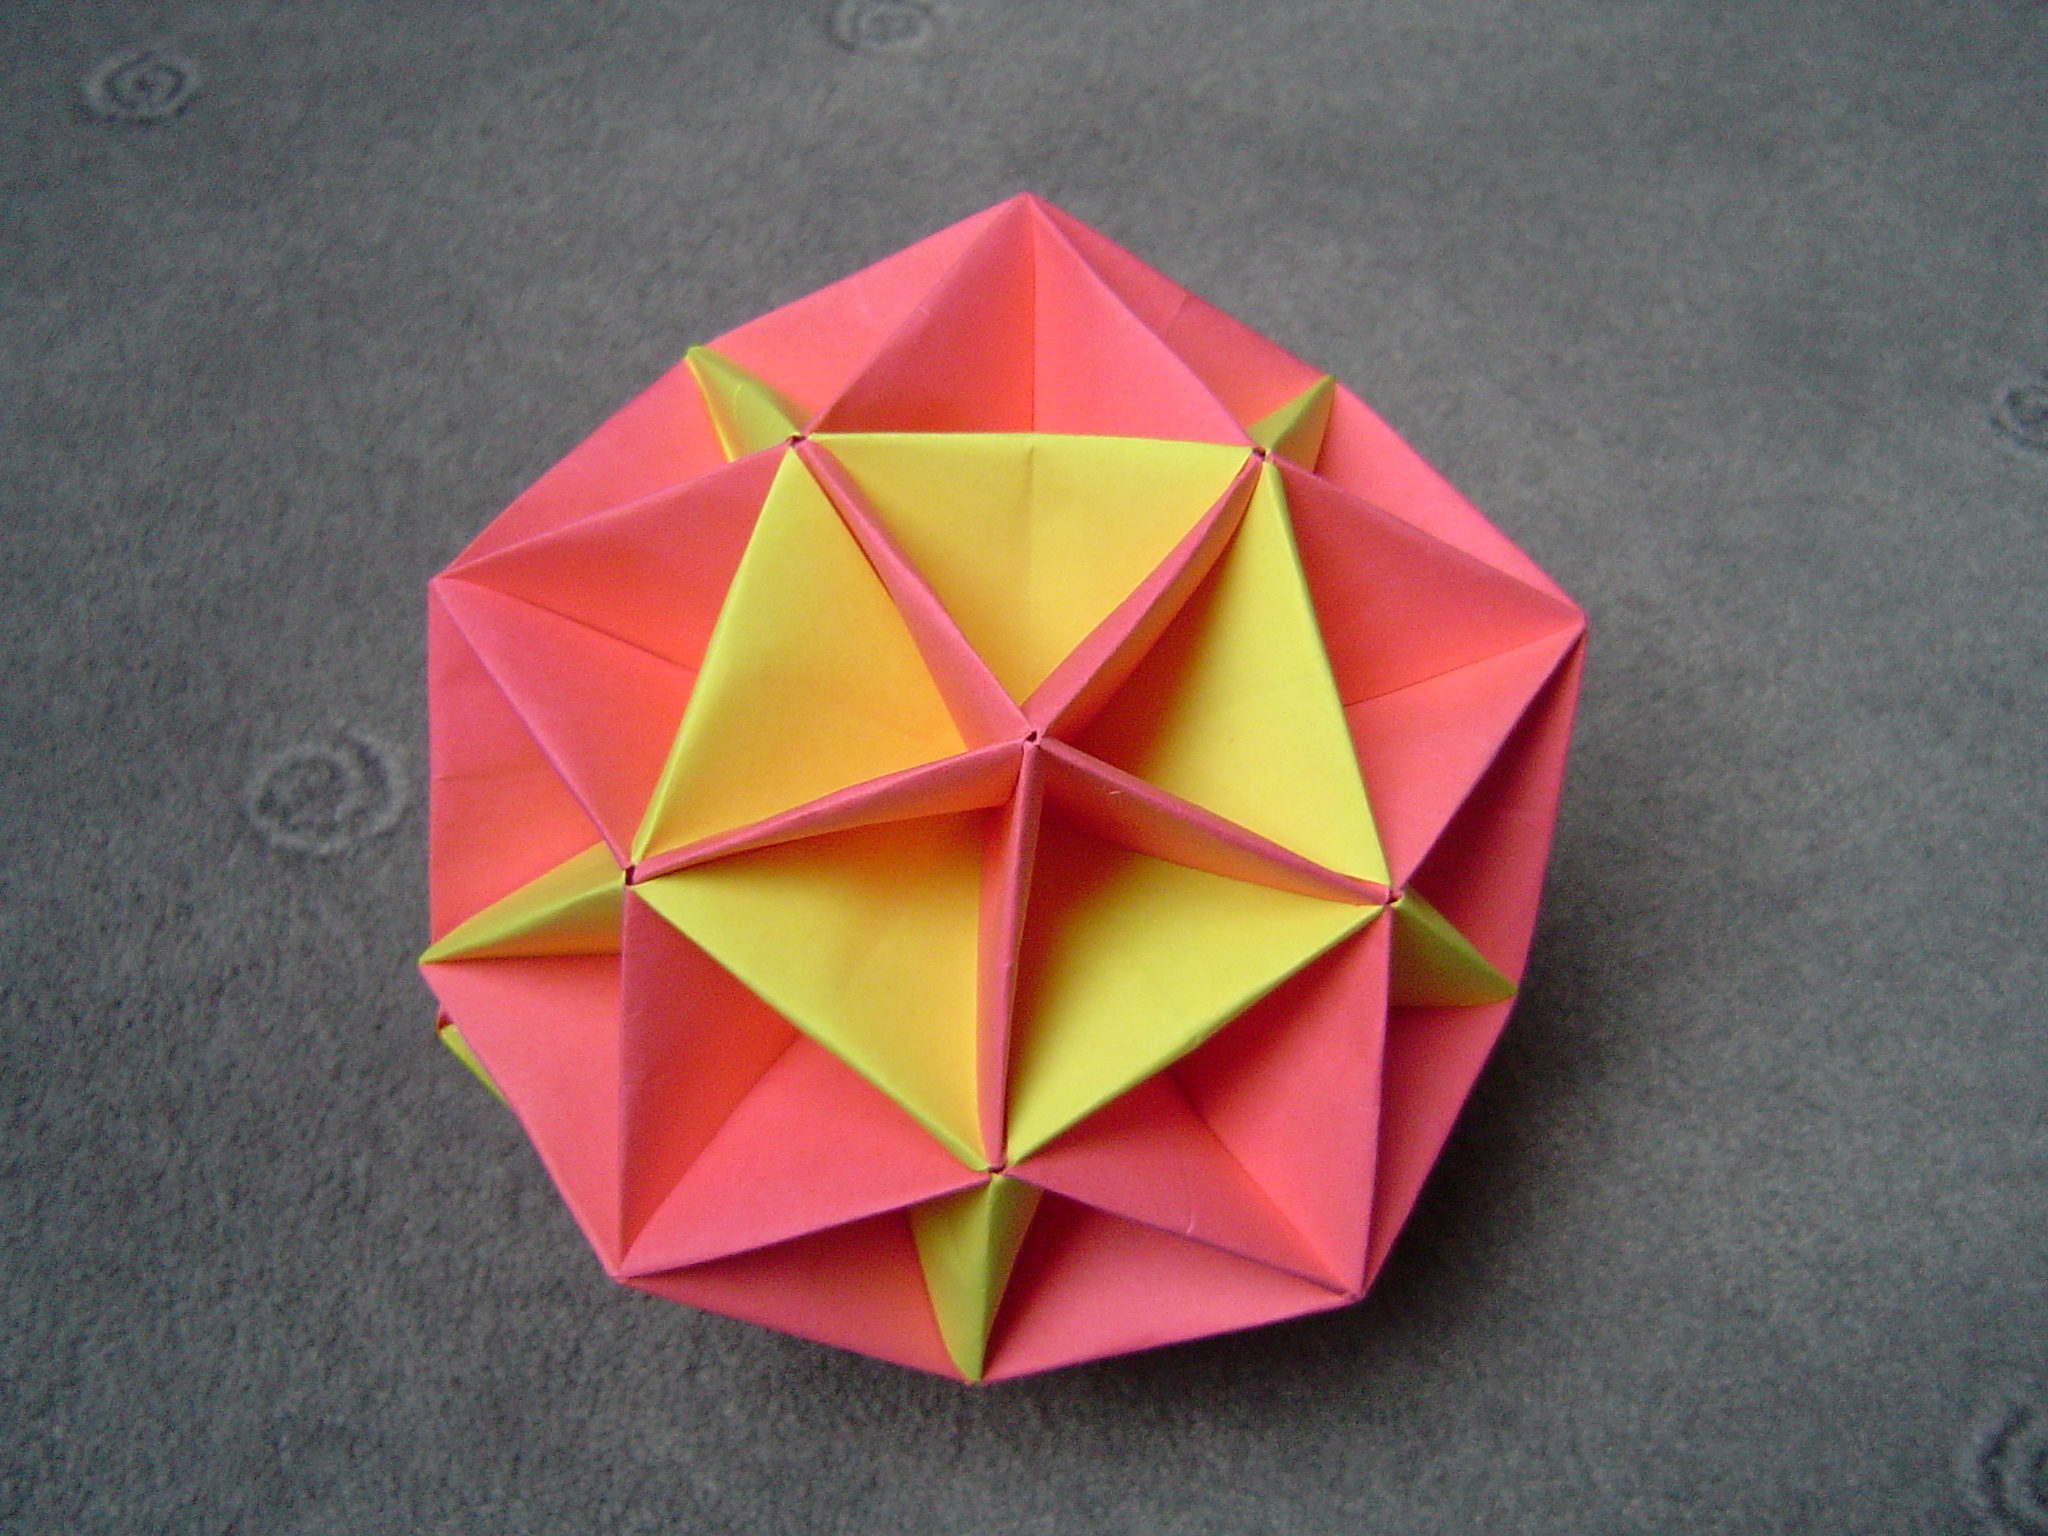 Dodecahedron With Pentagonal Pyramids On All Faces And Inverted Spikes Side